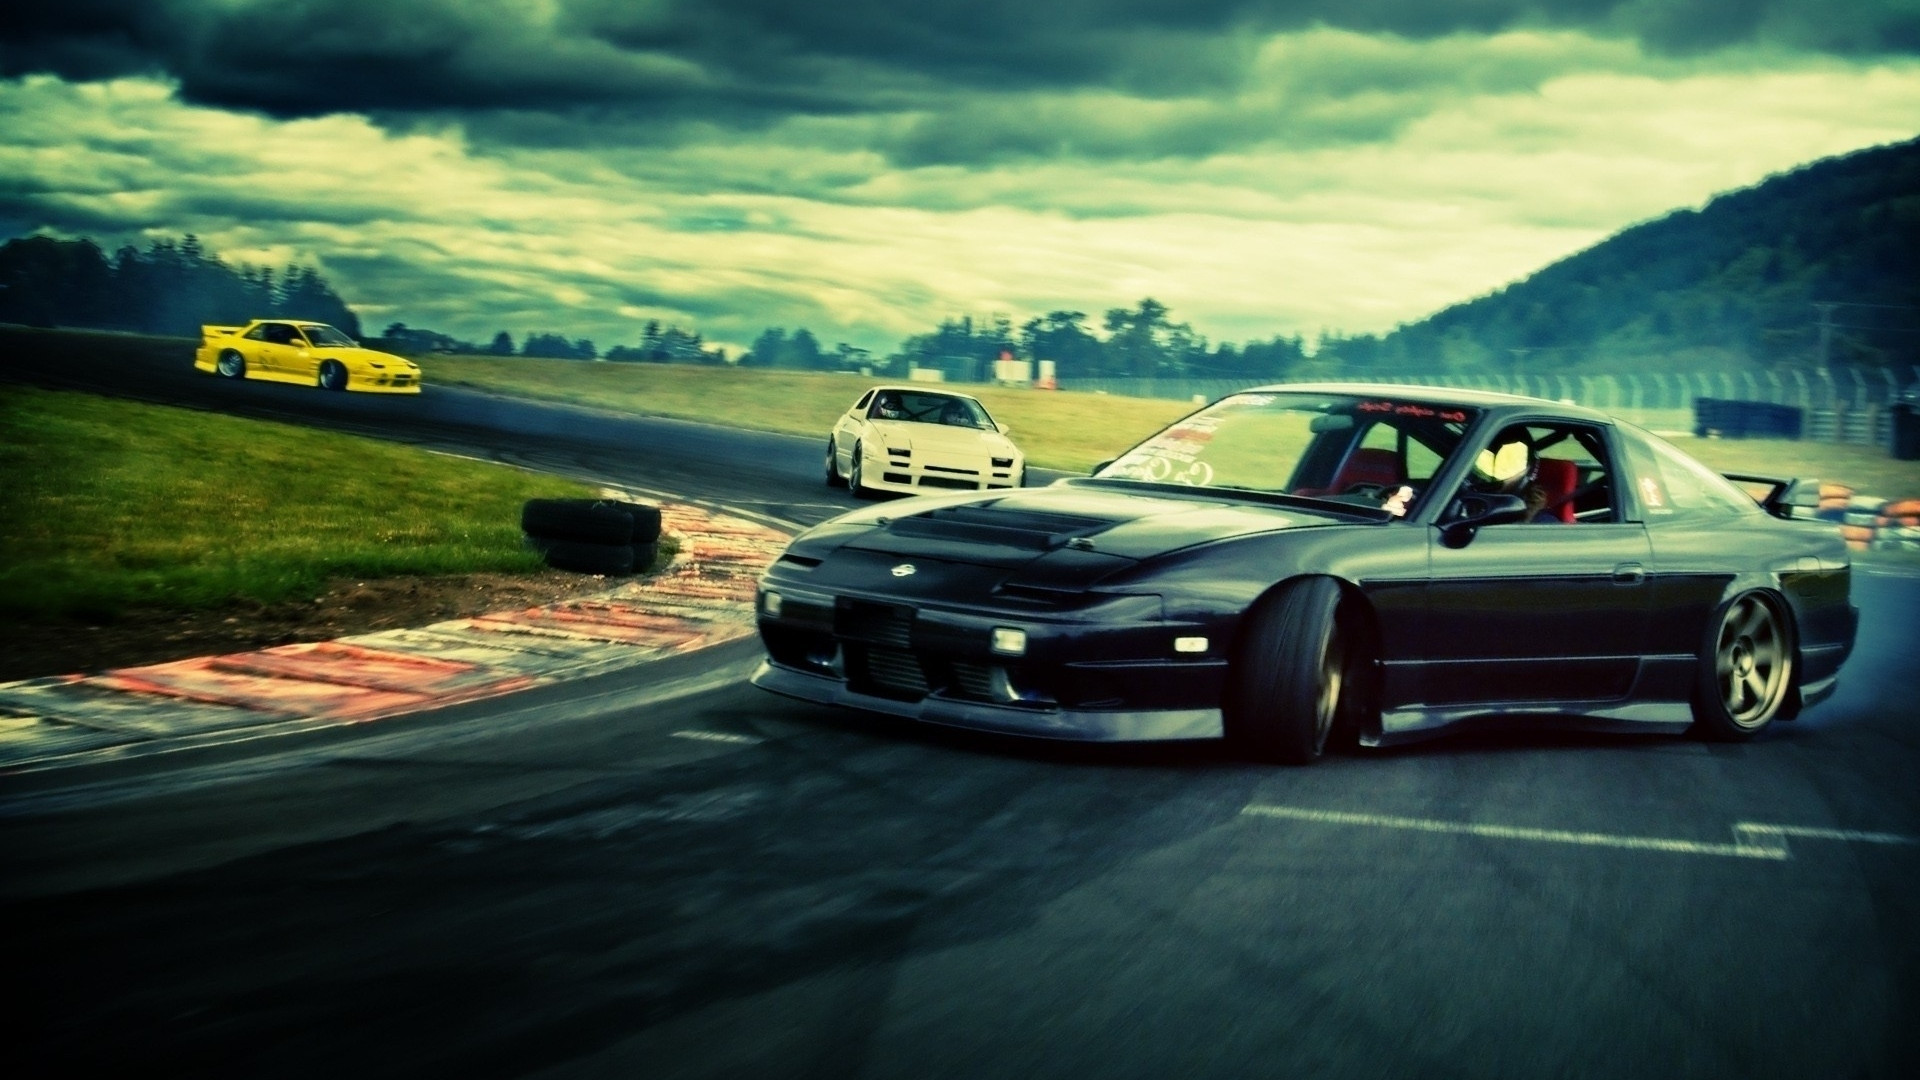 Drifting Cars Wallpapers Wallpapersafari